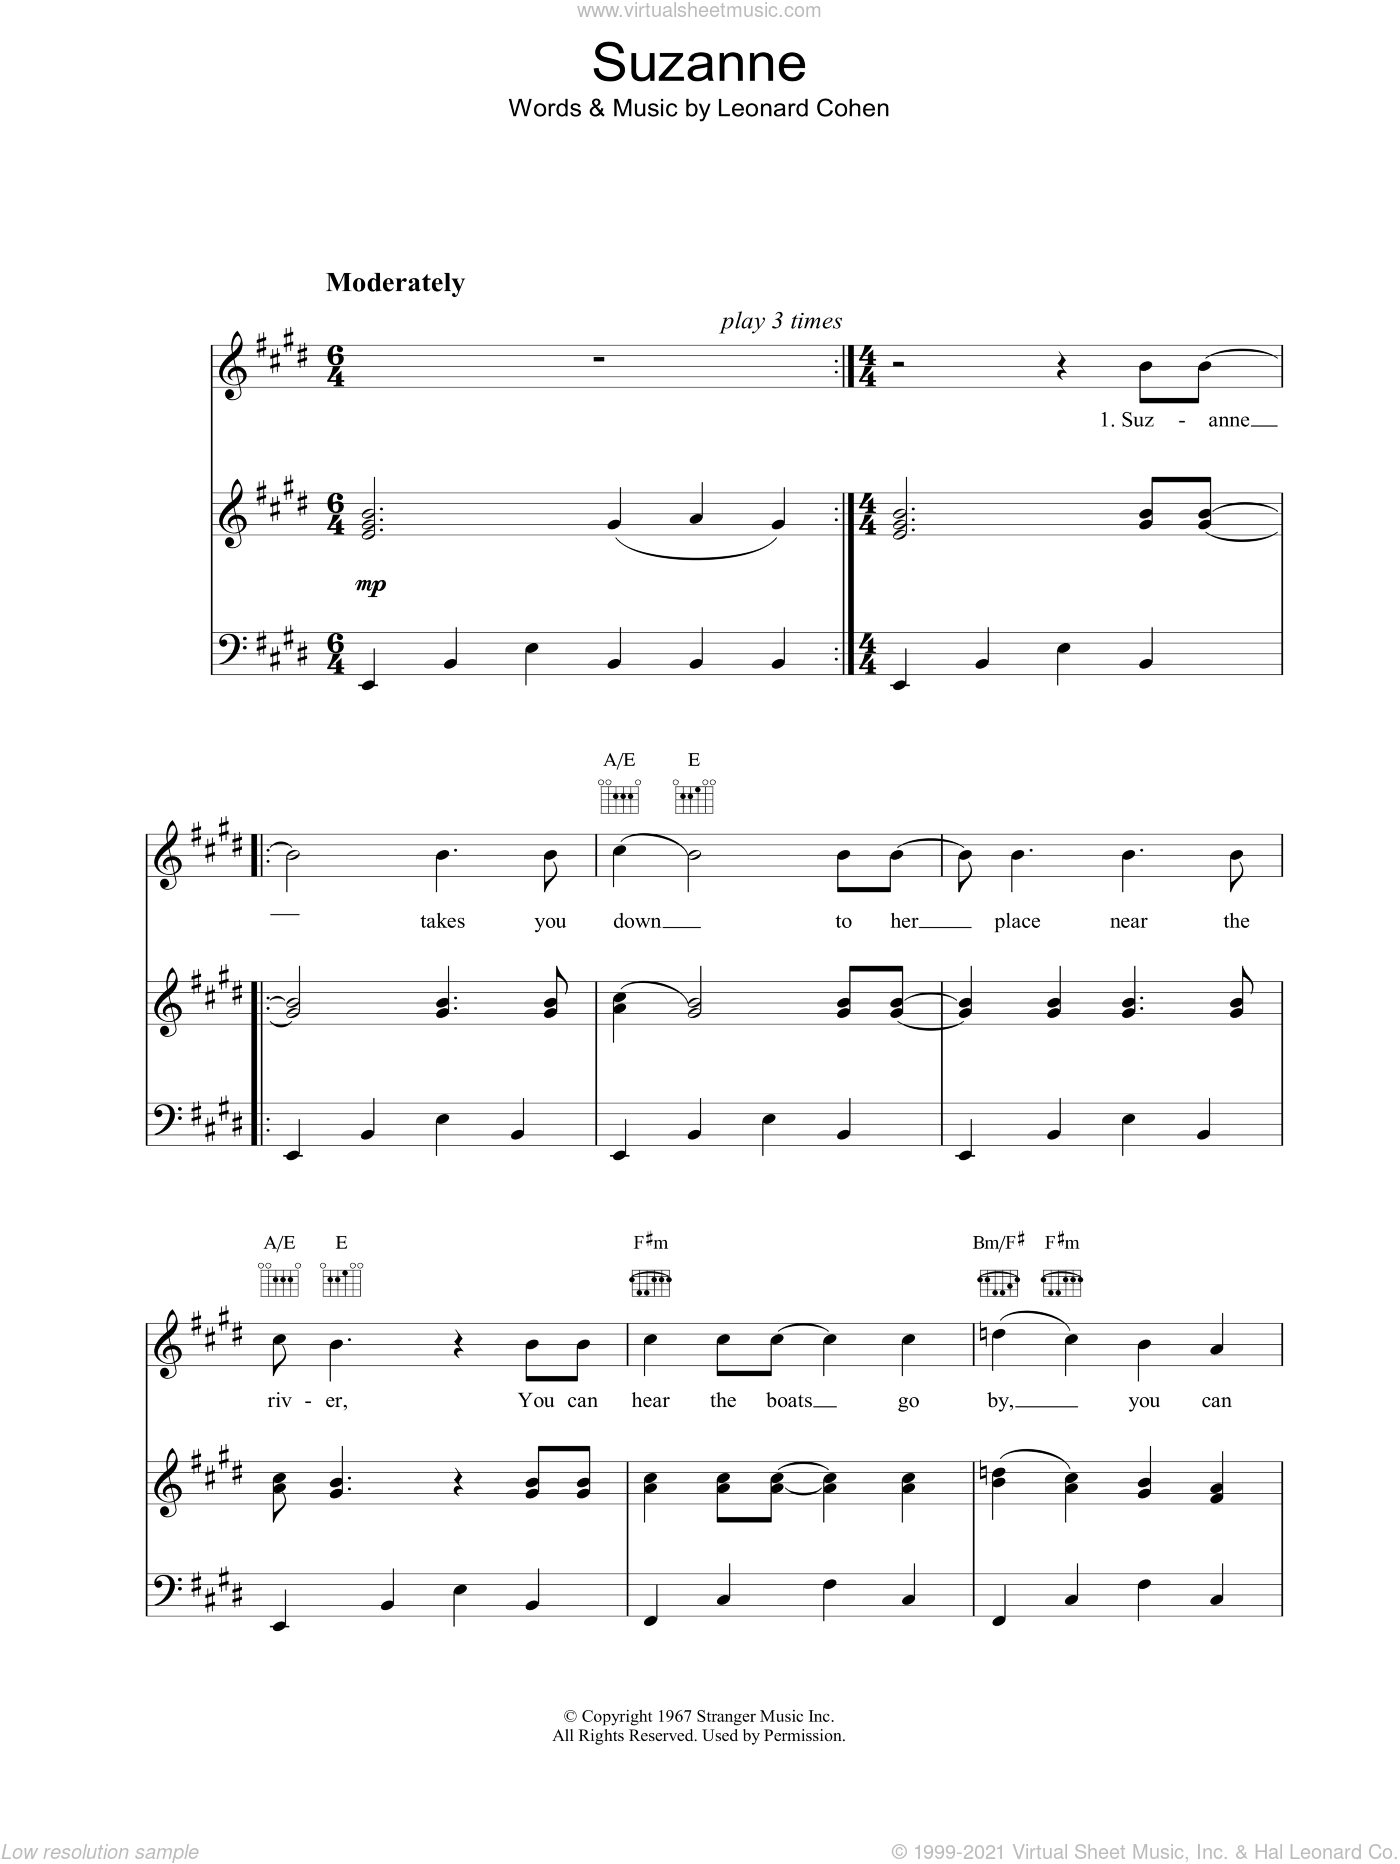 Suzanne sheet music for voice, piano or guitar by Leonard Cohen, intermediate